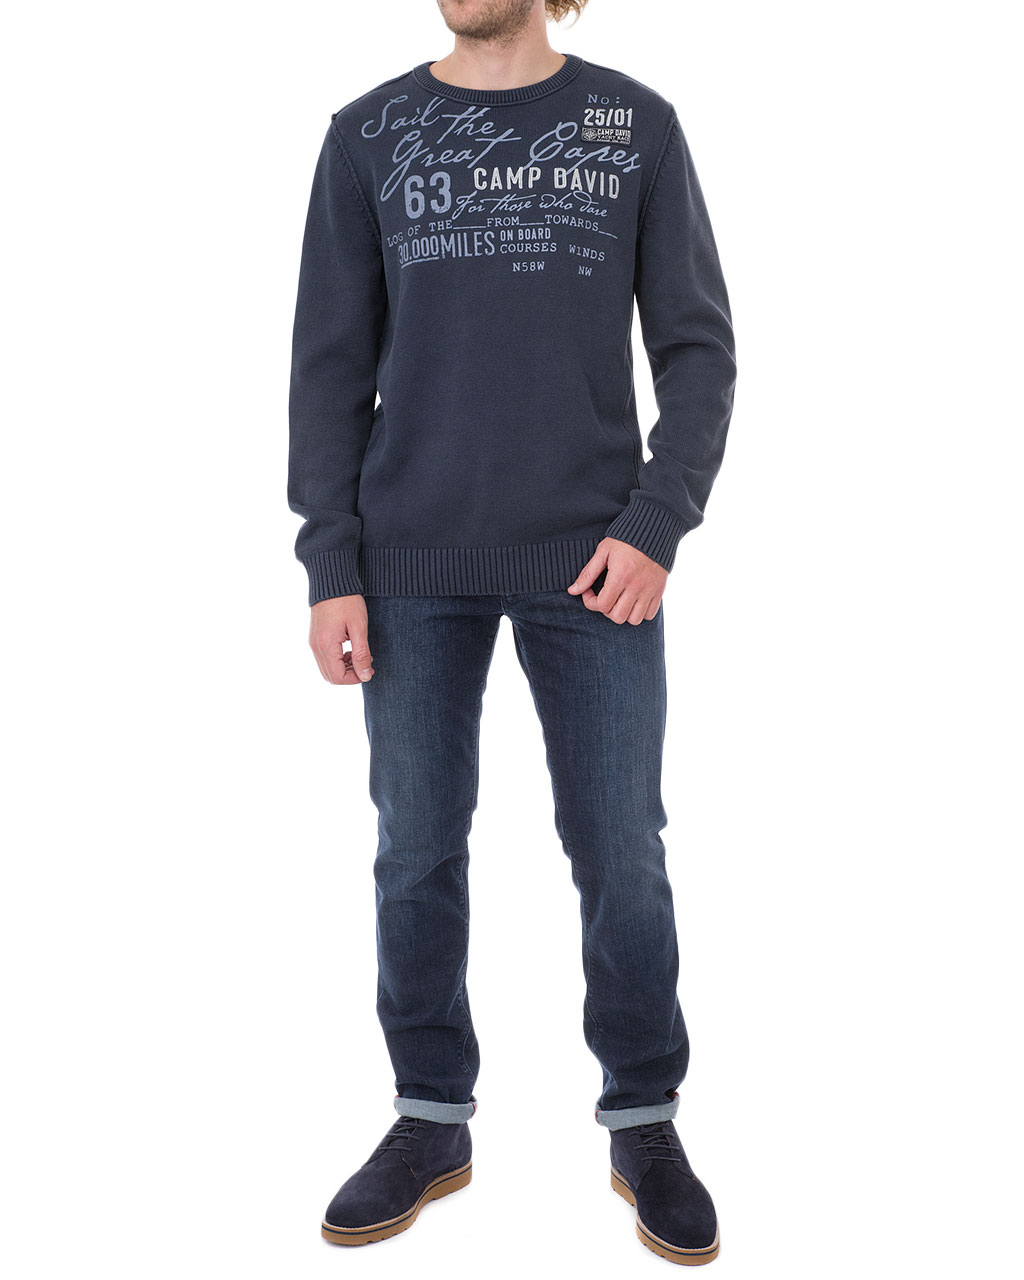 Men's jumper 1809-4770/8-92-синий (2)